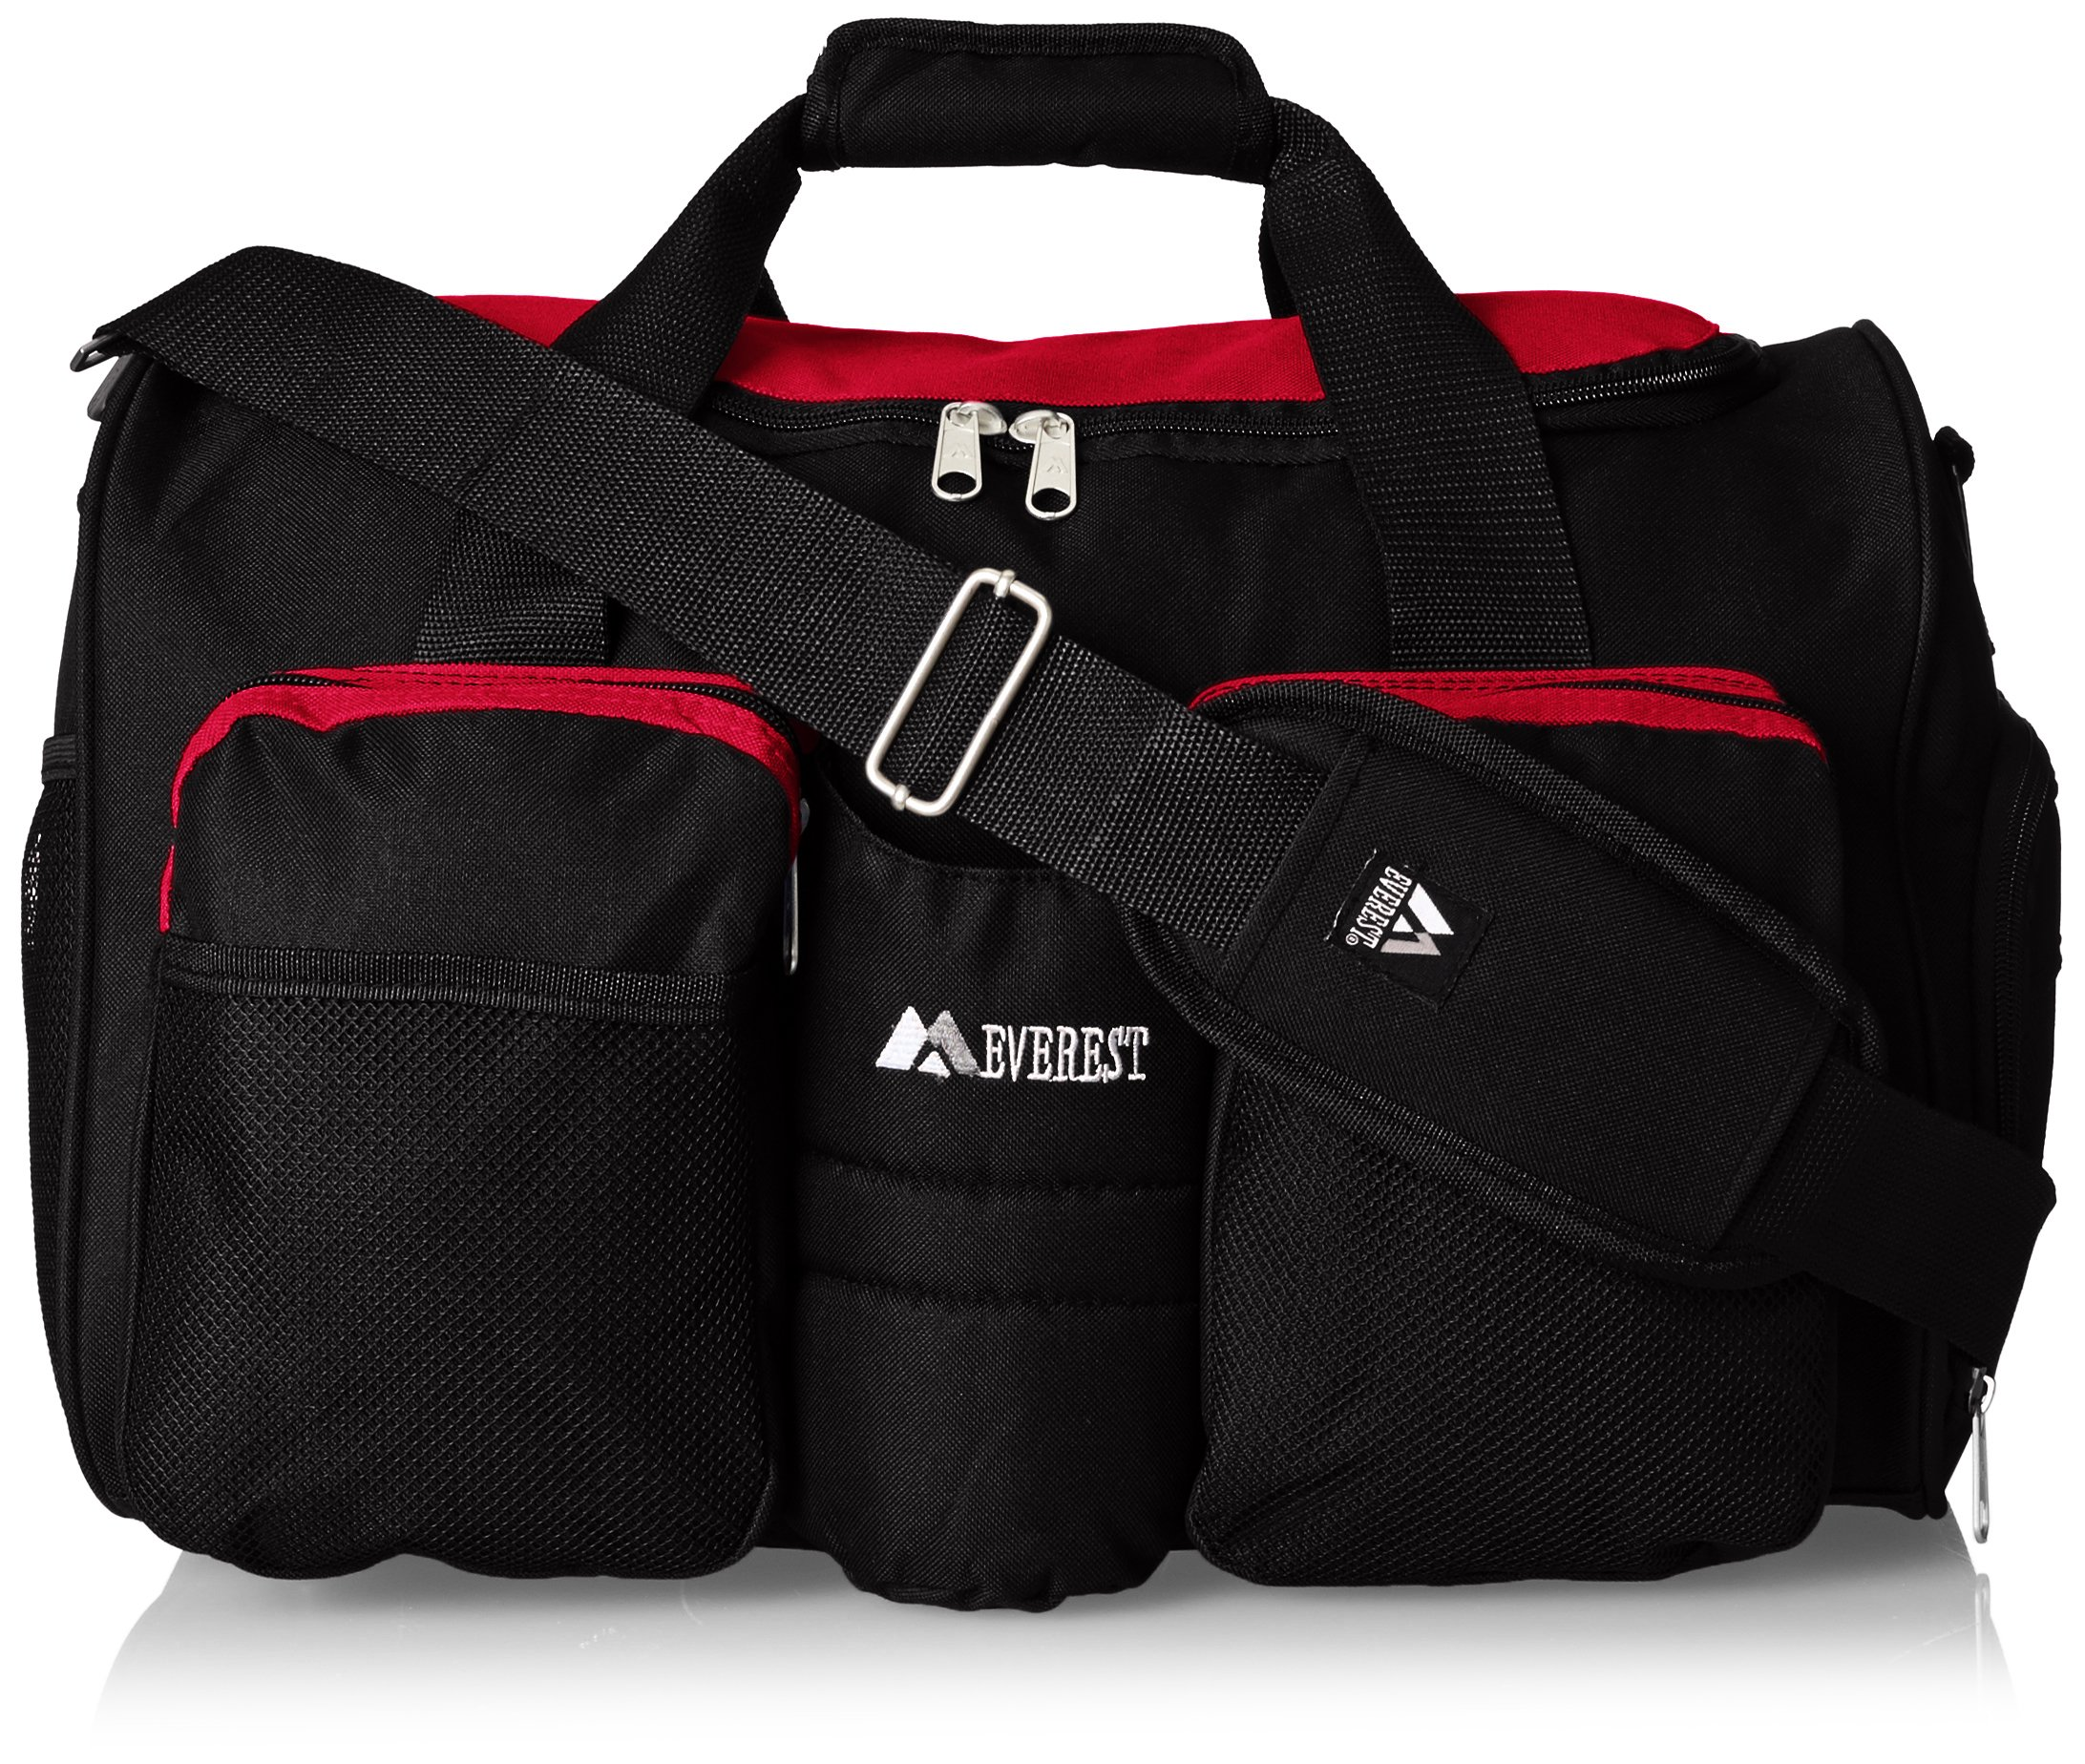 Everest Gym Bag with Wet Pocket, Red, One Size